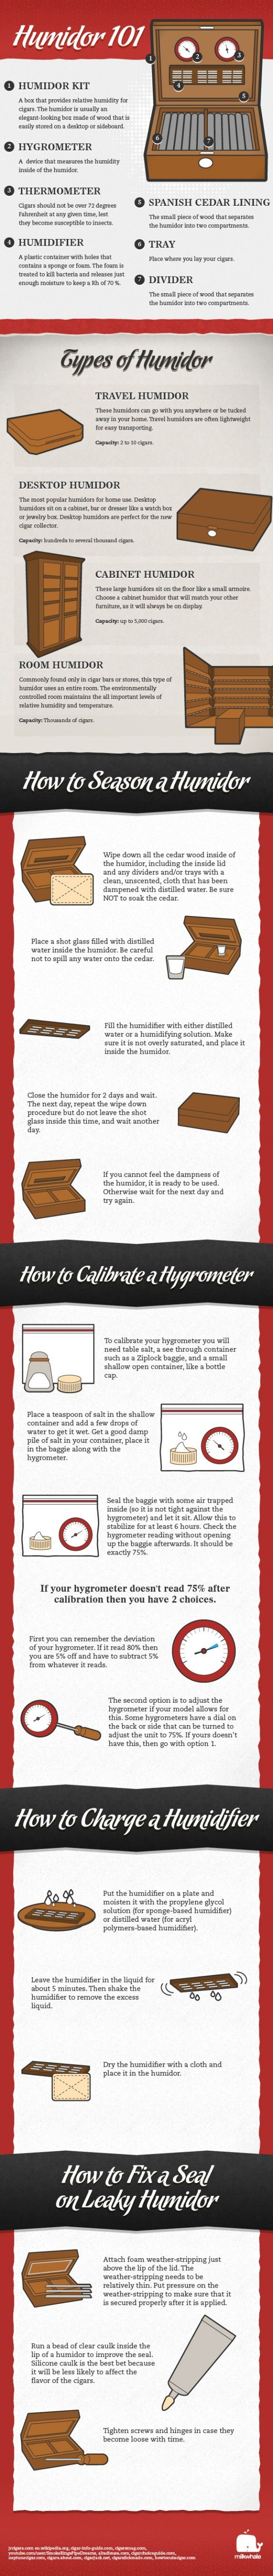 Types of Humidor Infographics